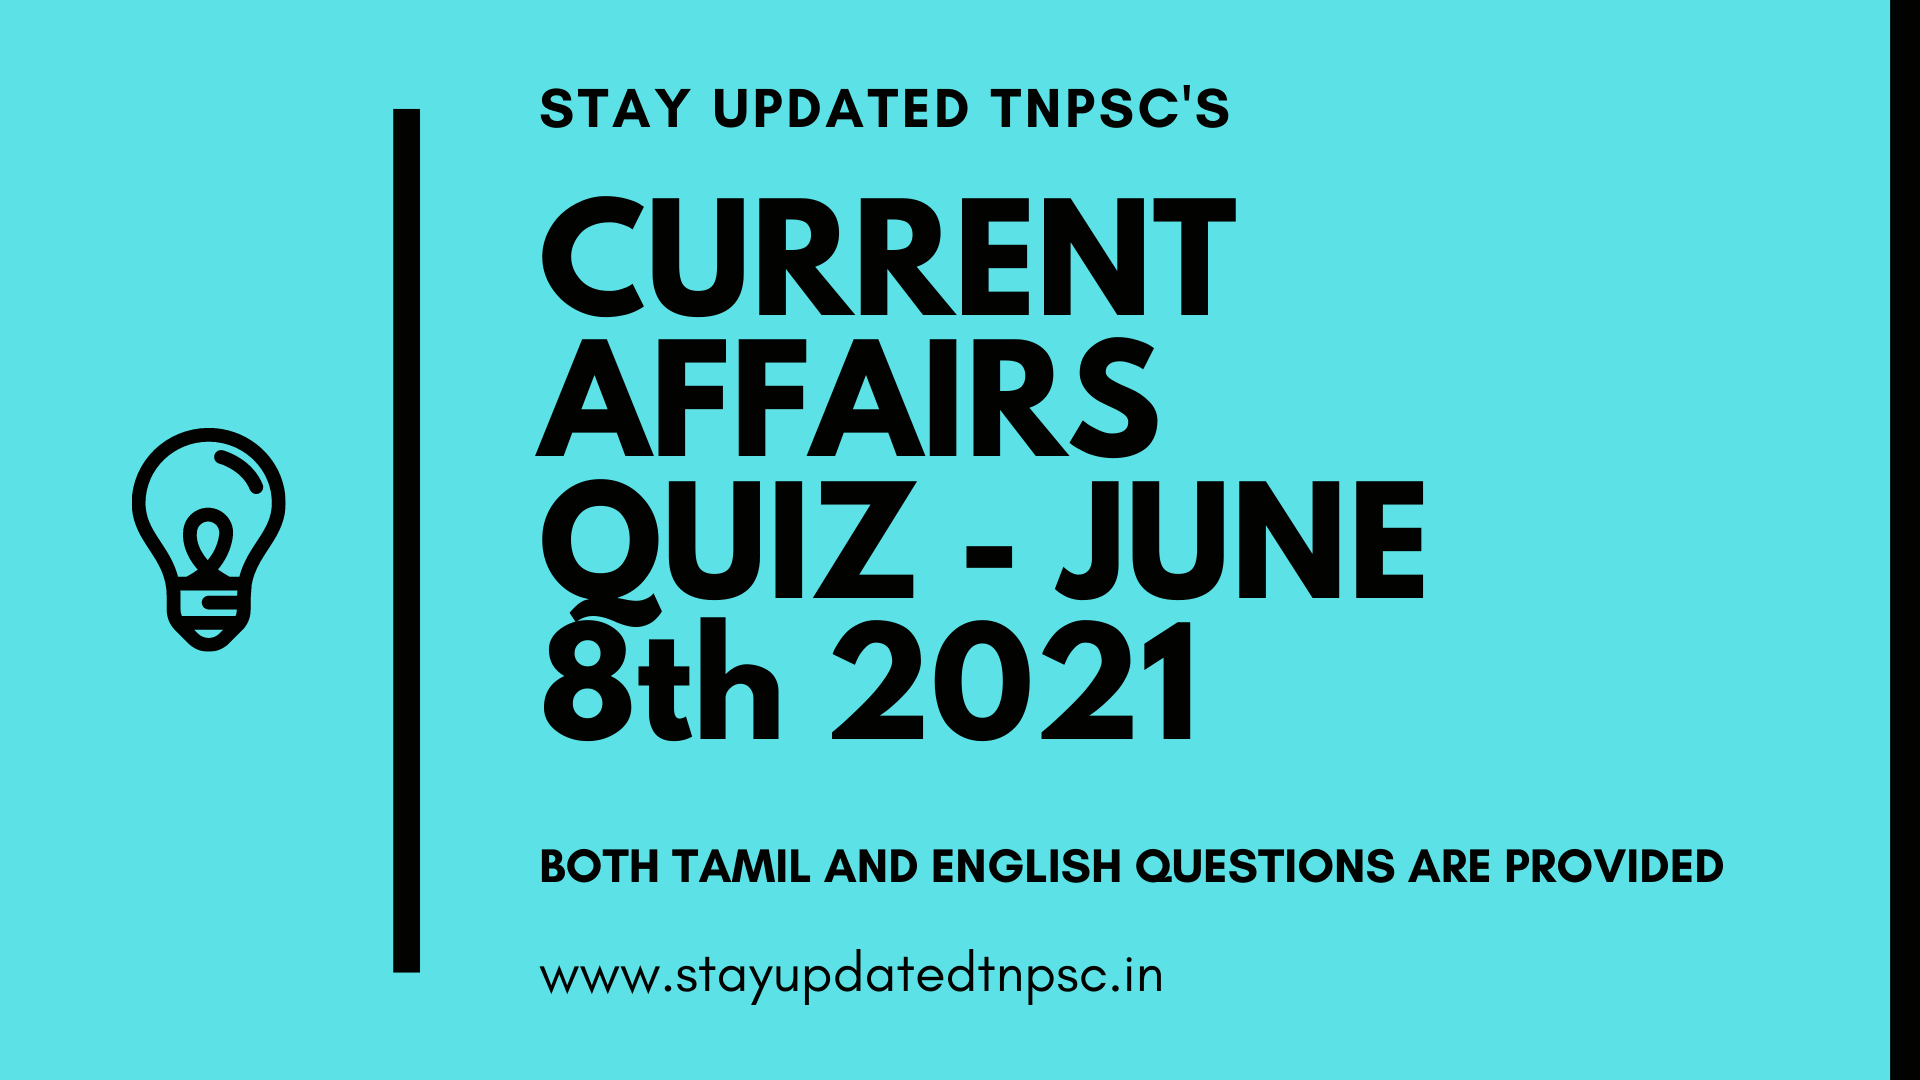 TNPSC DAILY CURRENT AFFAIRS: 08 JUNE 2021